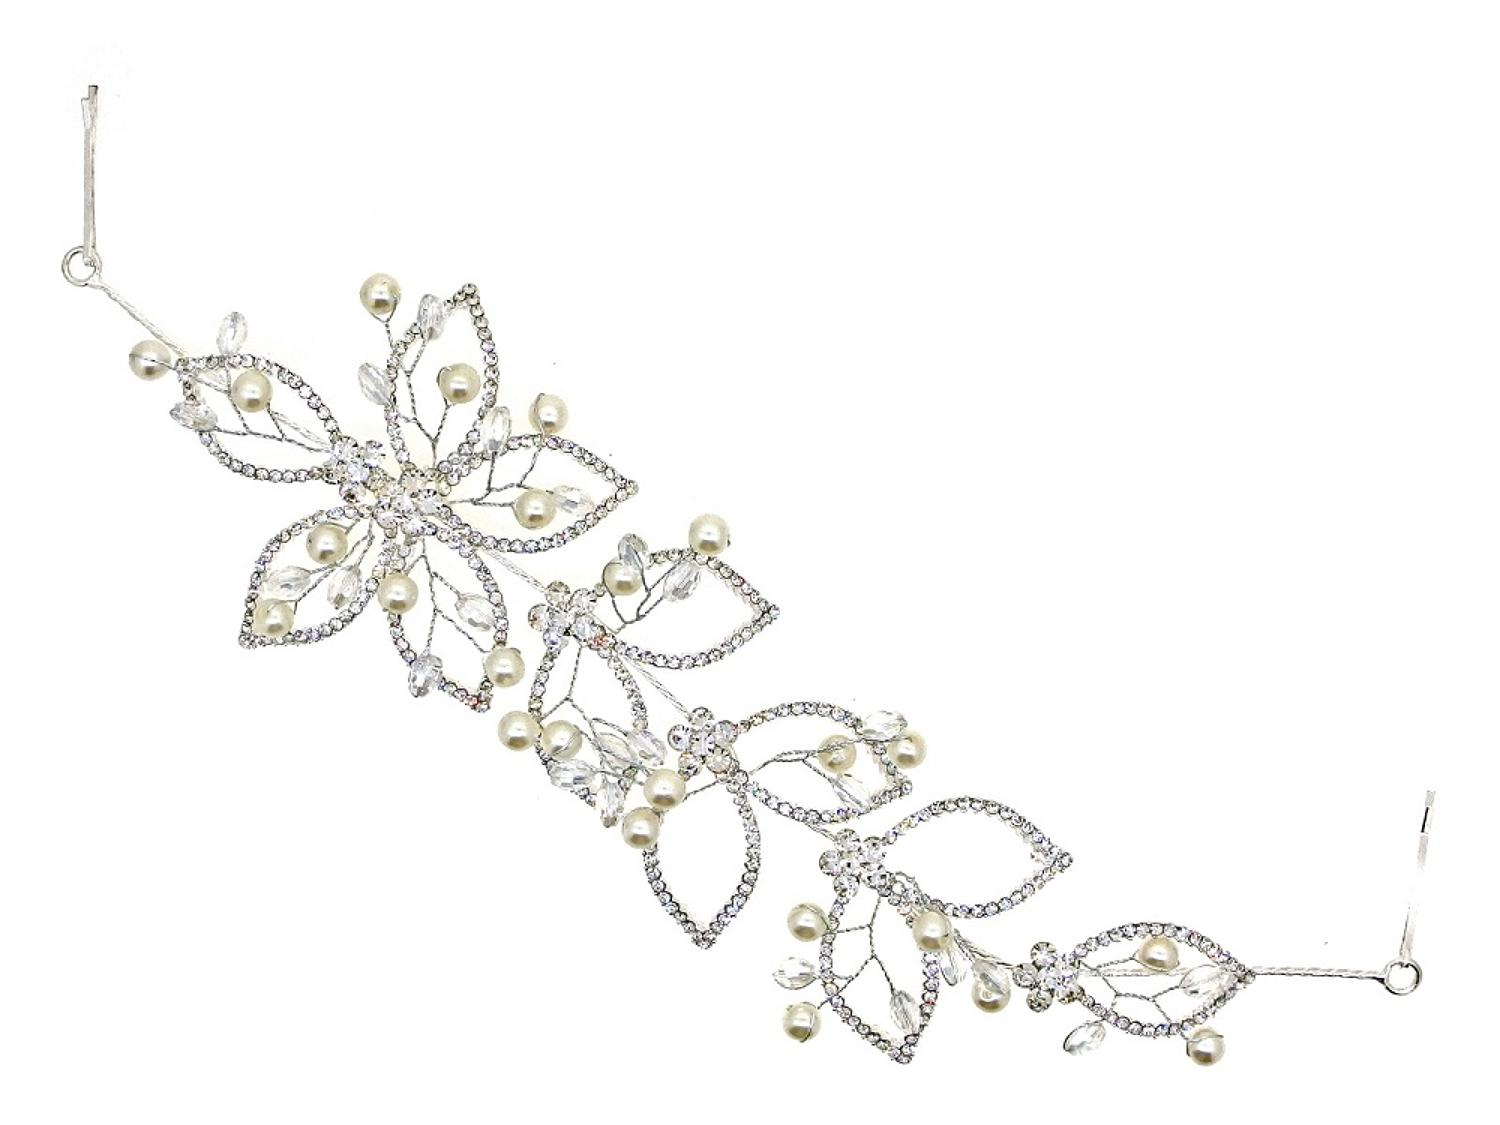 Crystal & Pearl Flower Hair Piece/Vine